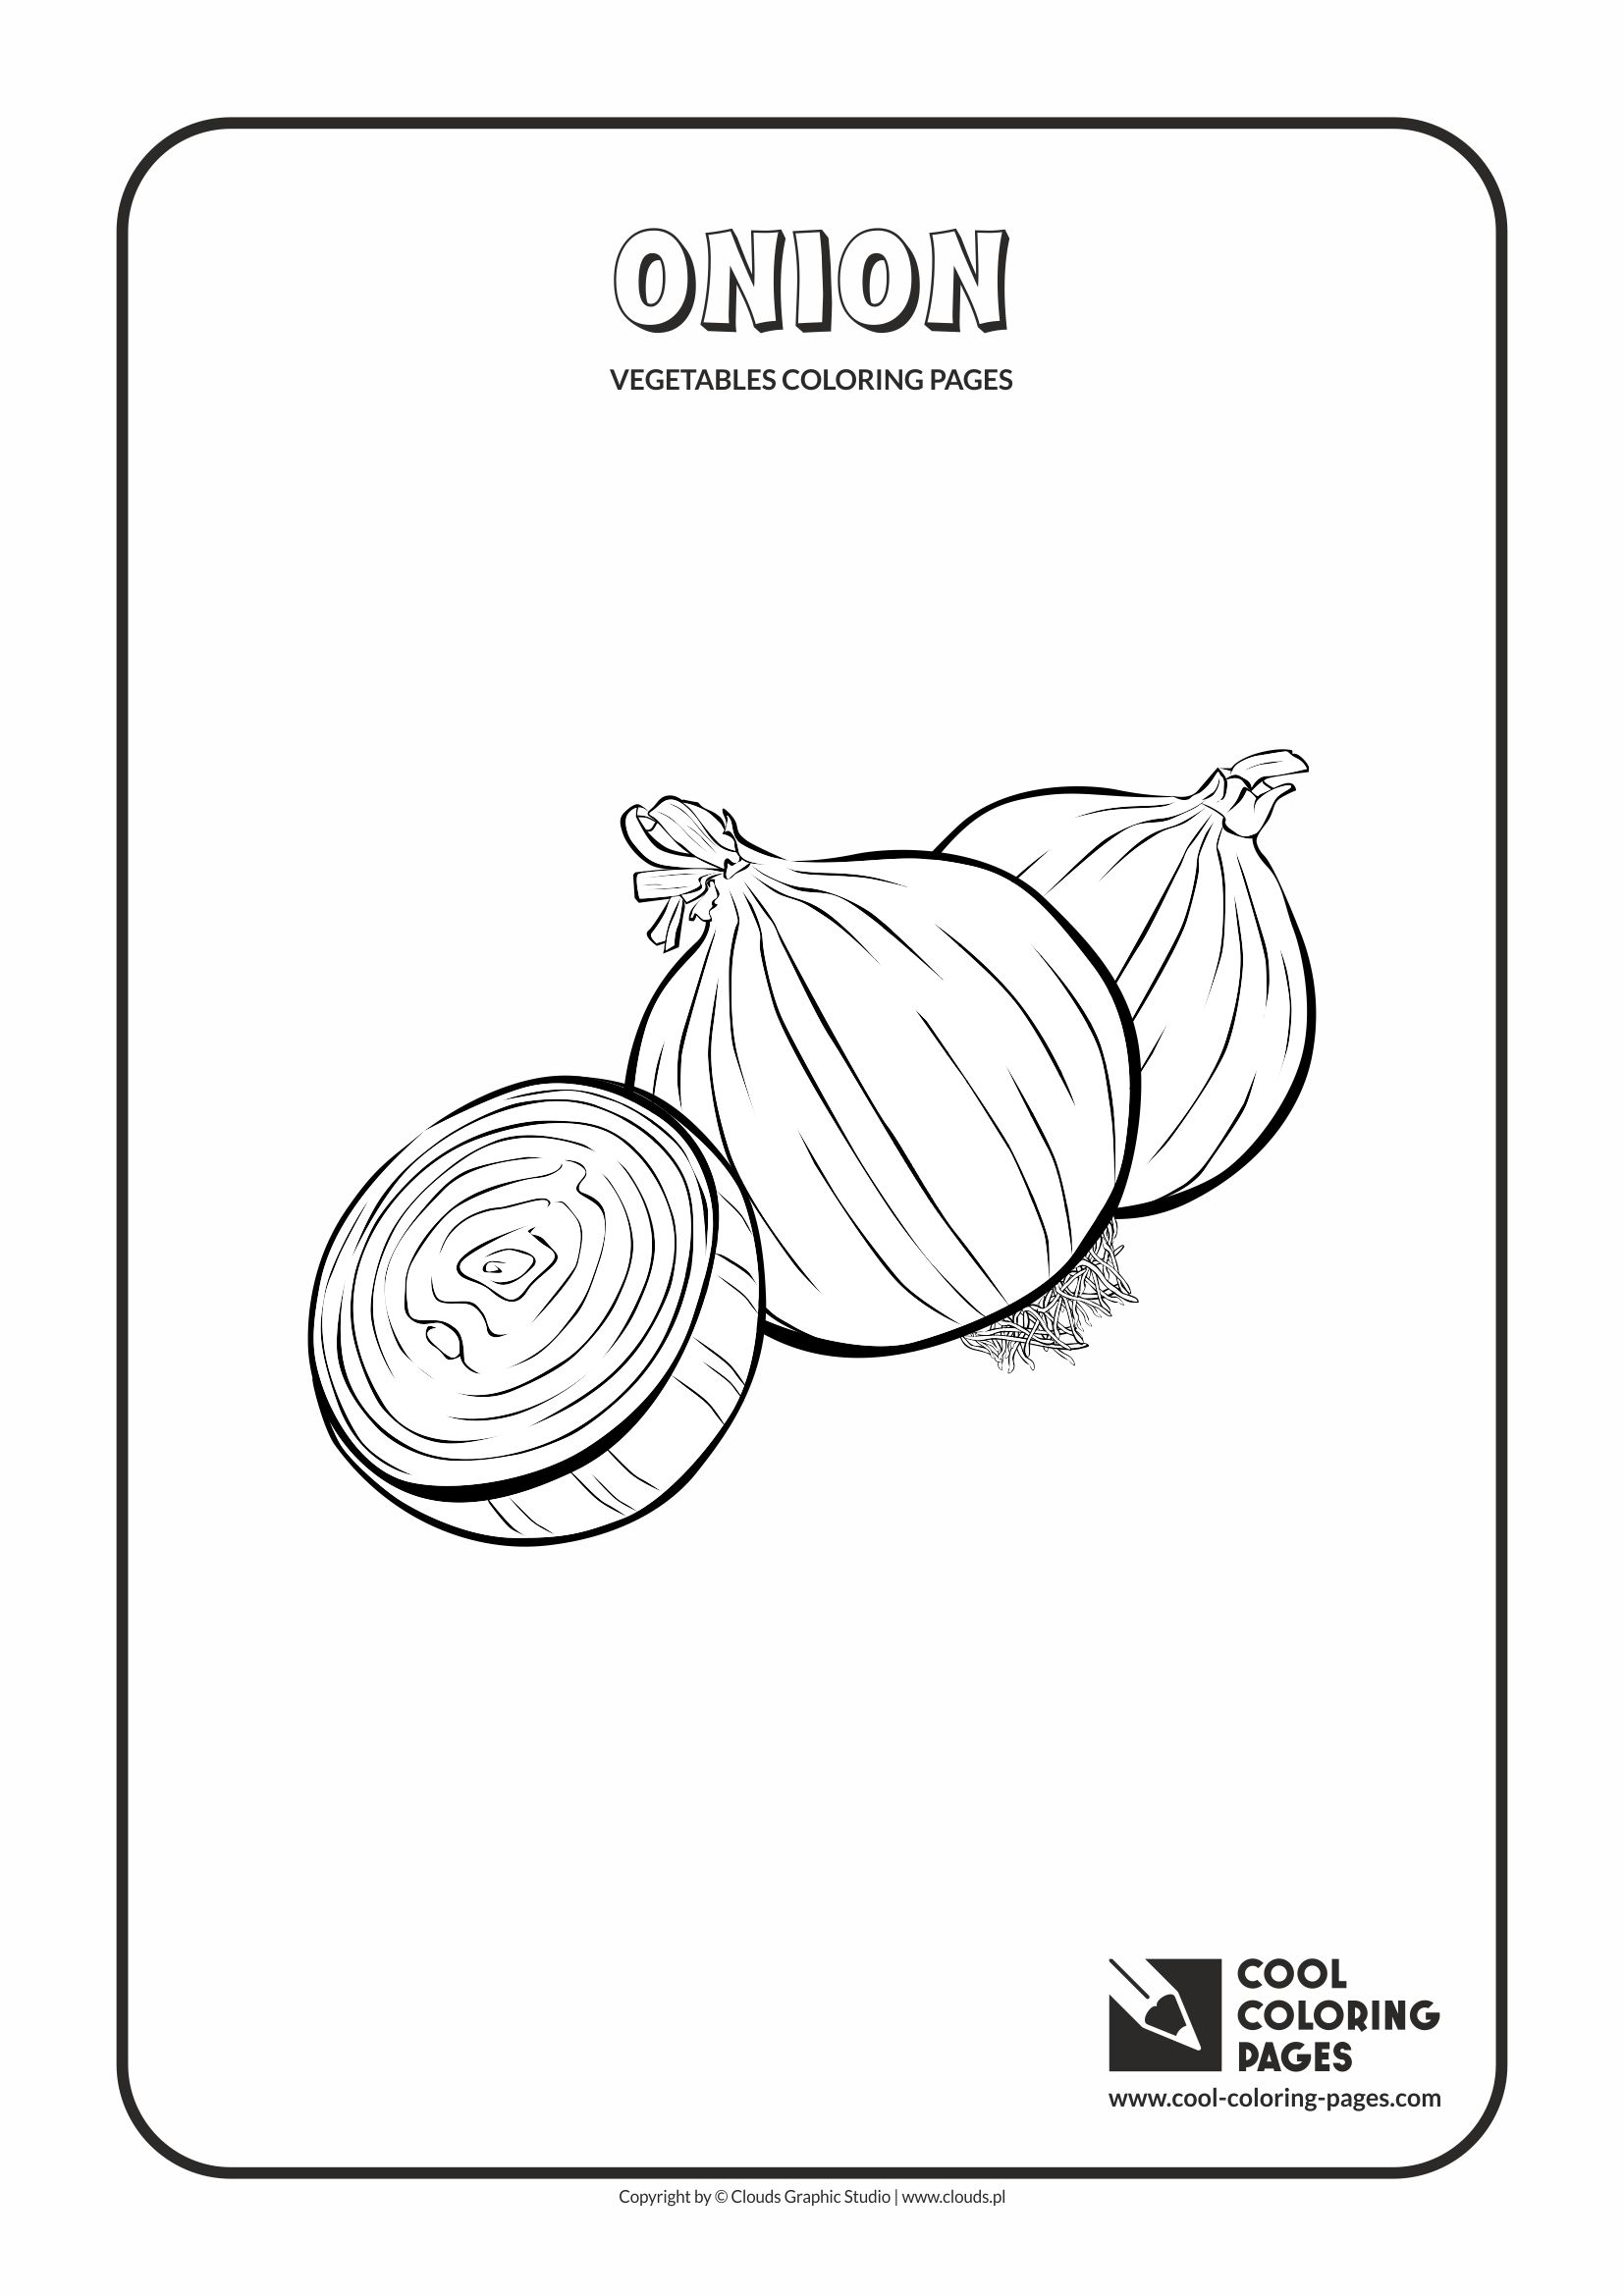 Cool Coloring Pages - Plants / Onion / Coloring page with onion